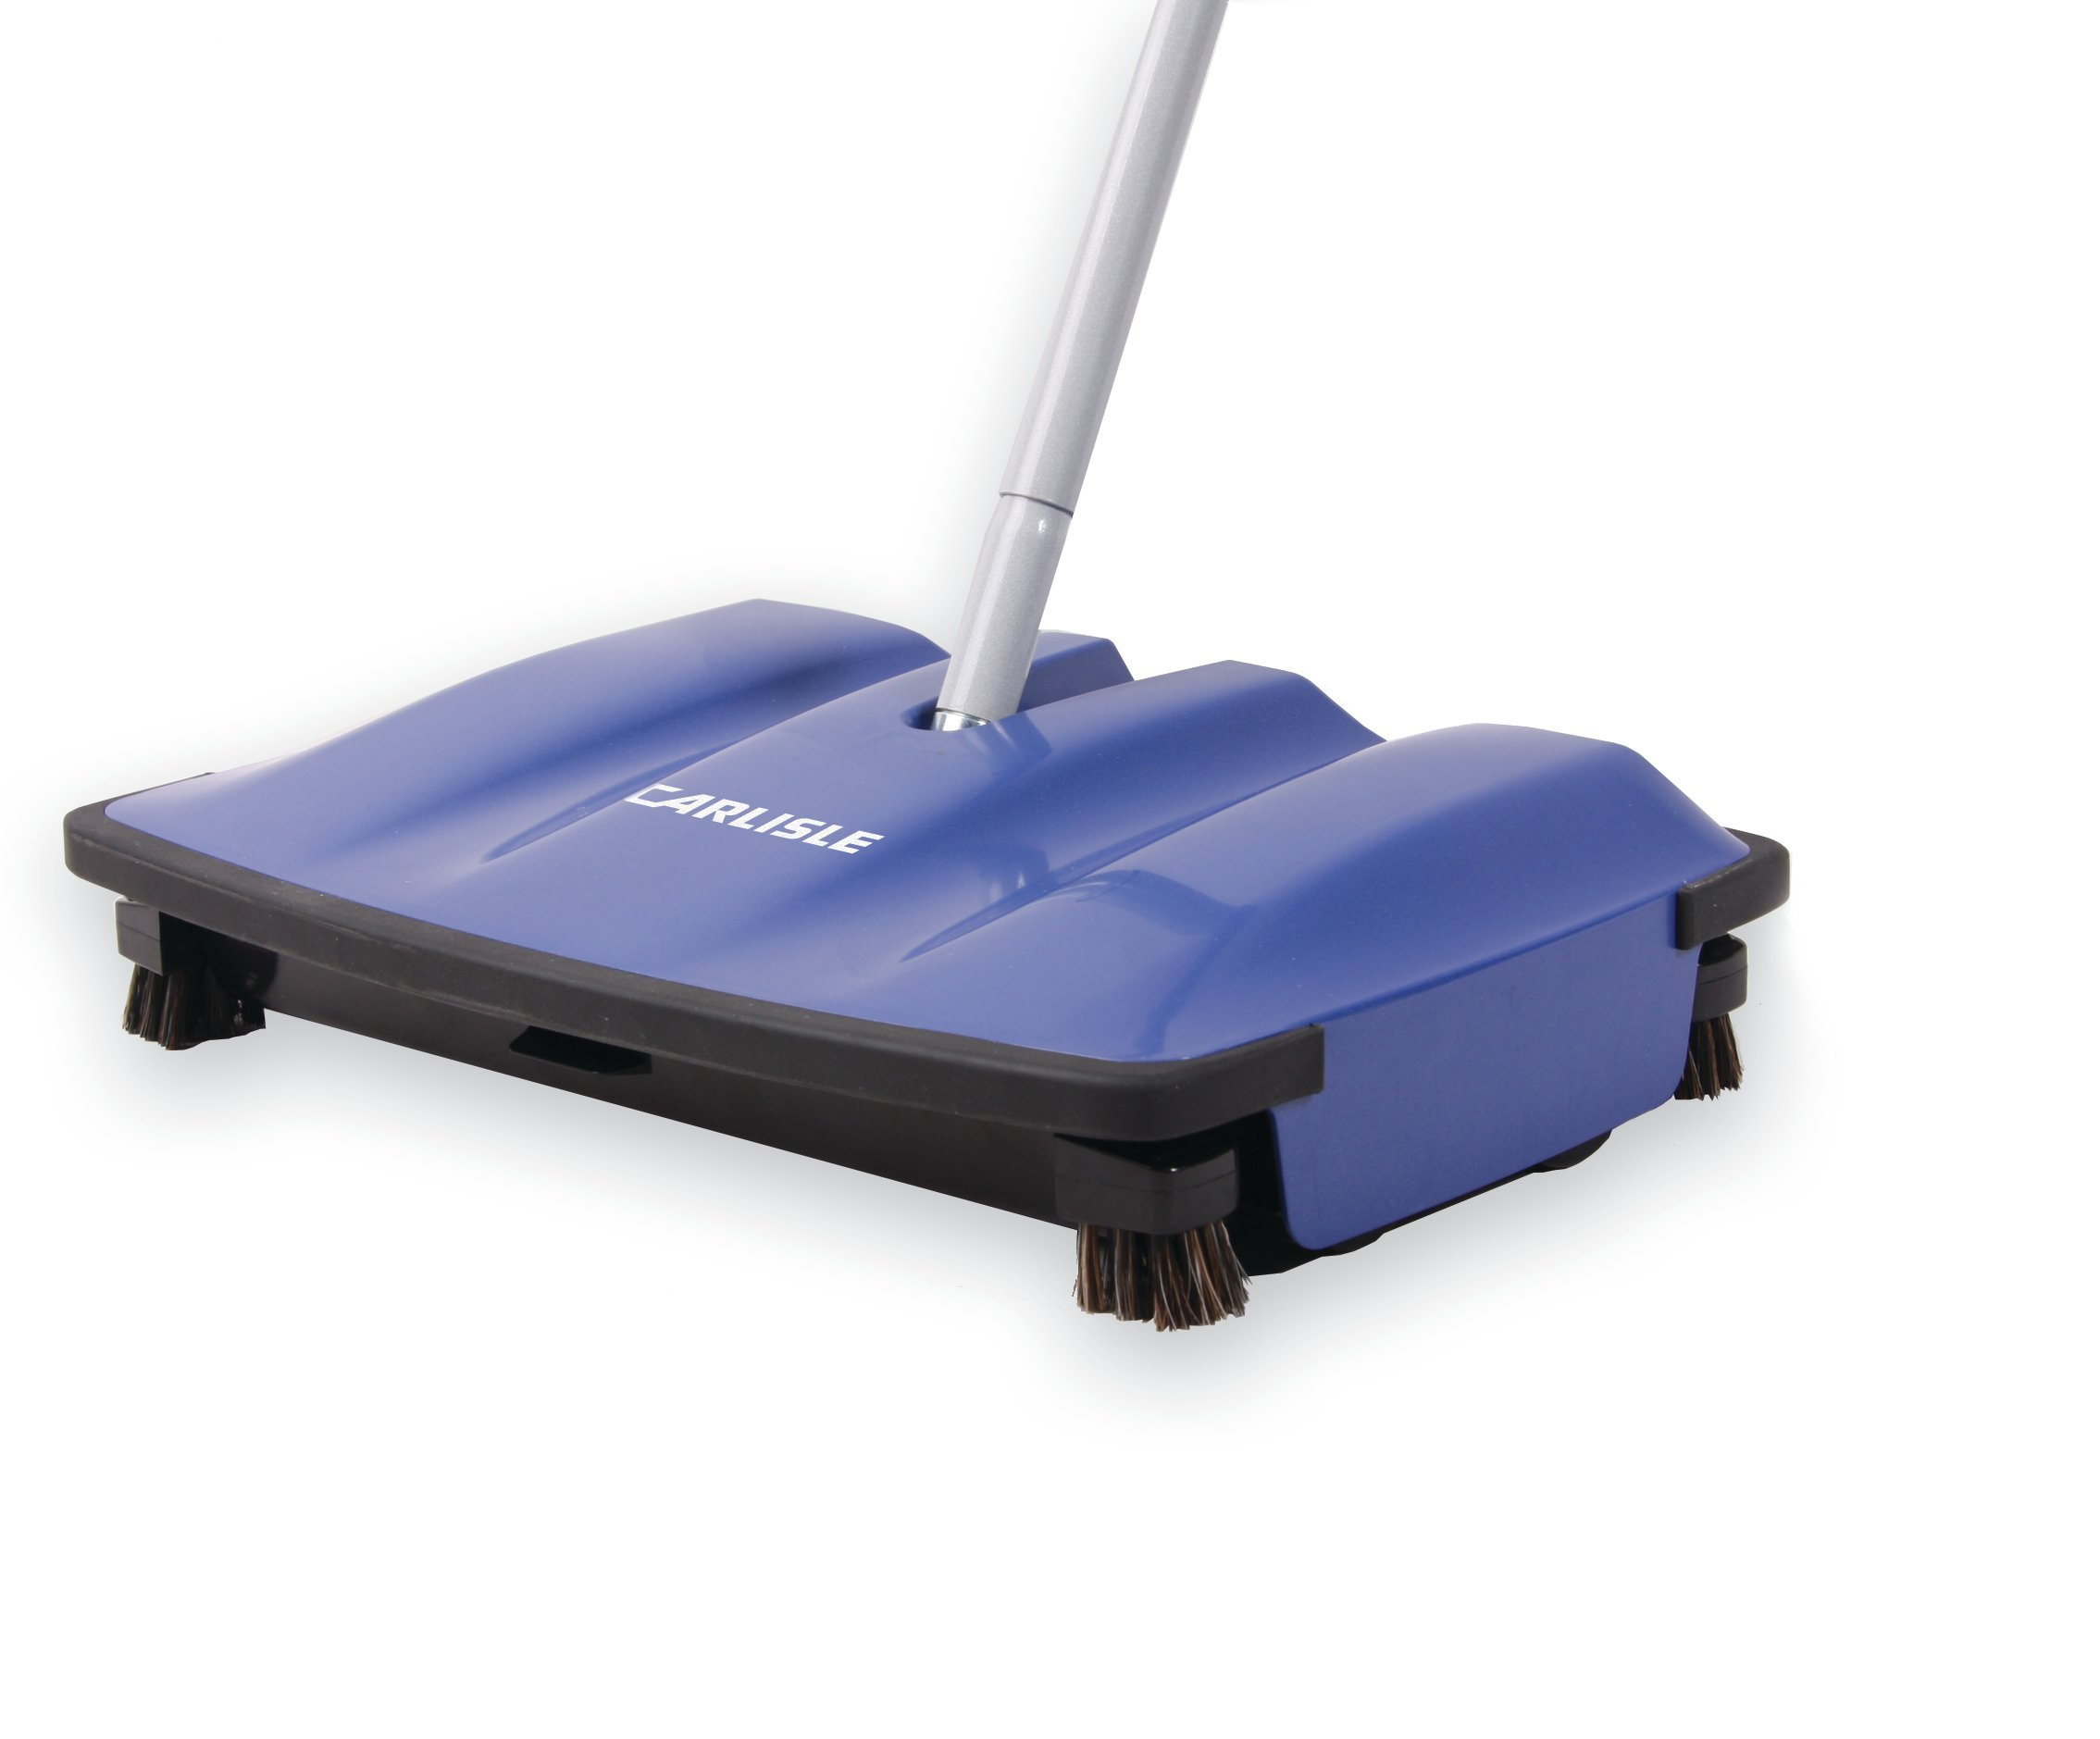 Carlisle 3640014 Duo-Sweeper ABS Multi-Surface Floor Sweeper, 1/2'' Length Brush, 8'' Length x 12'' Width x 2-1/2'' Height, Blue